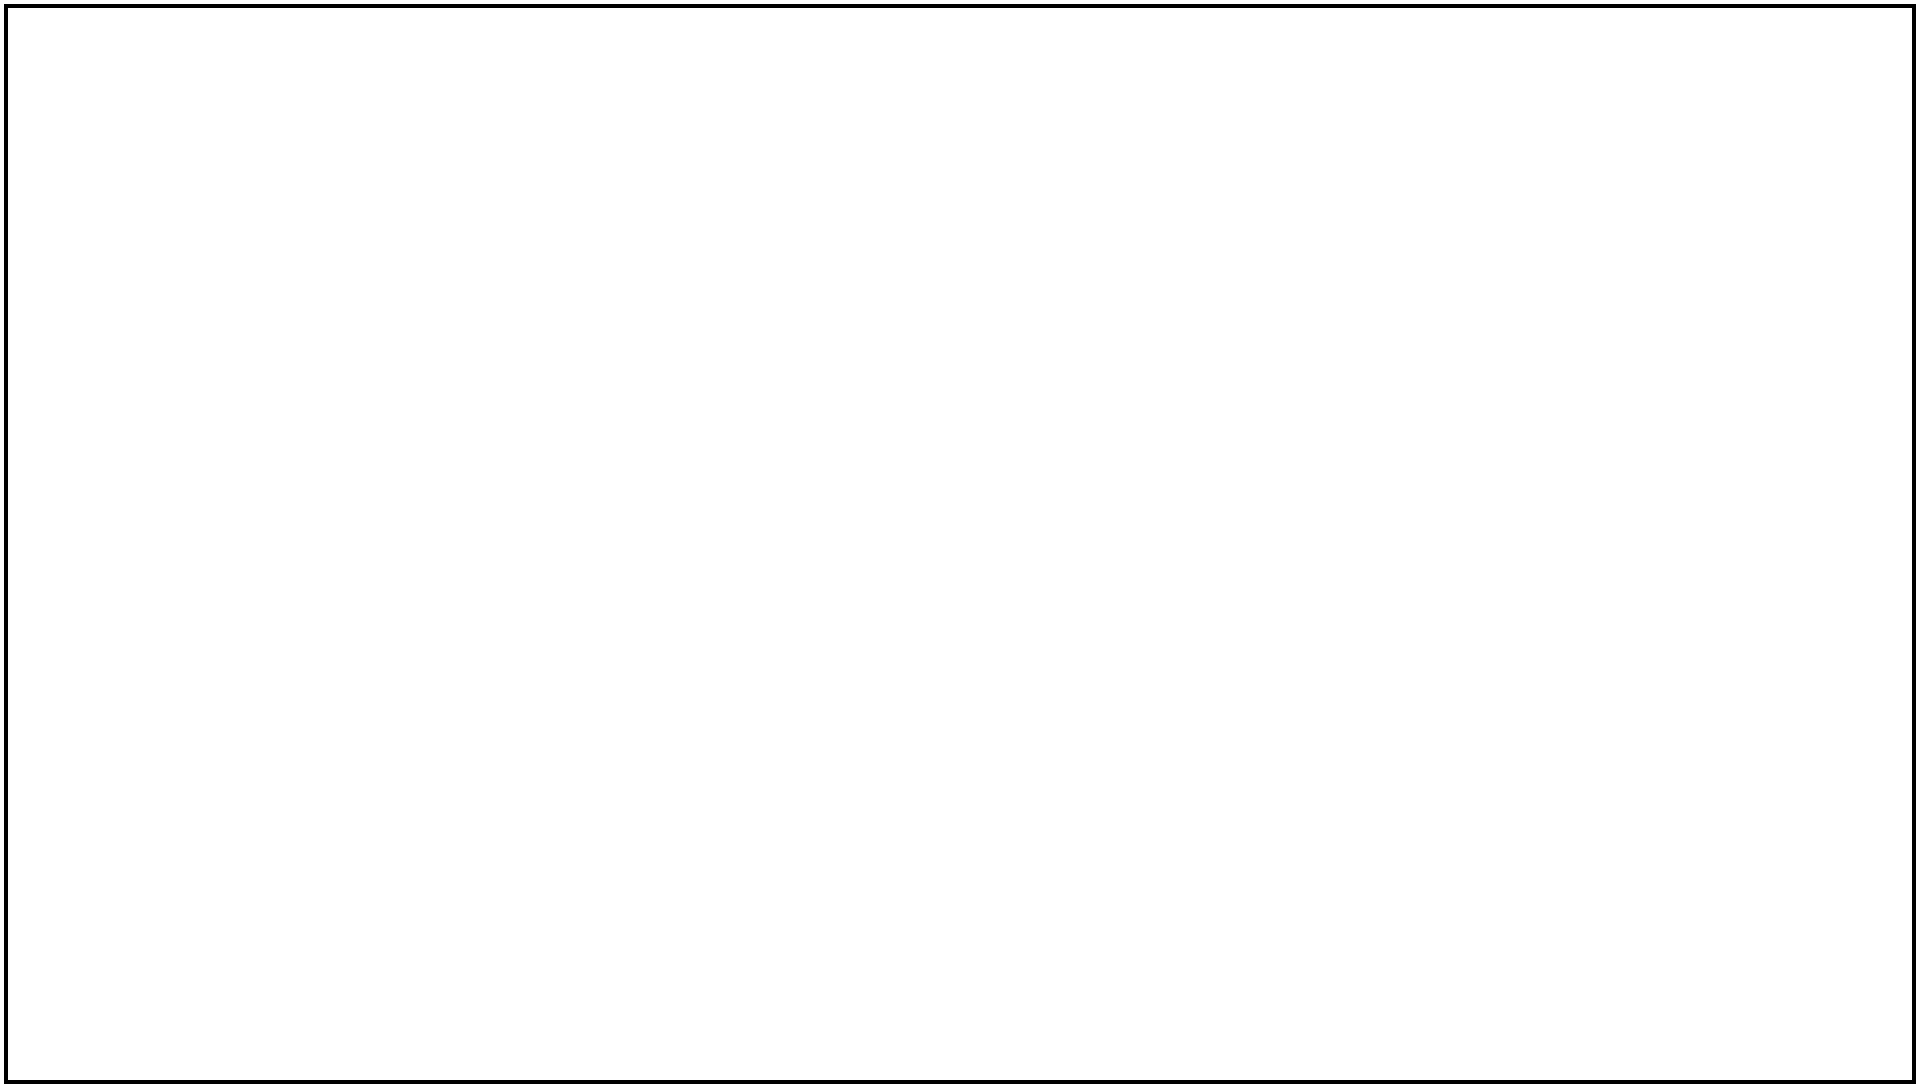 white rectangle border png #67687148